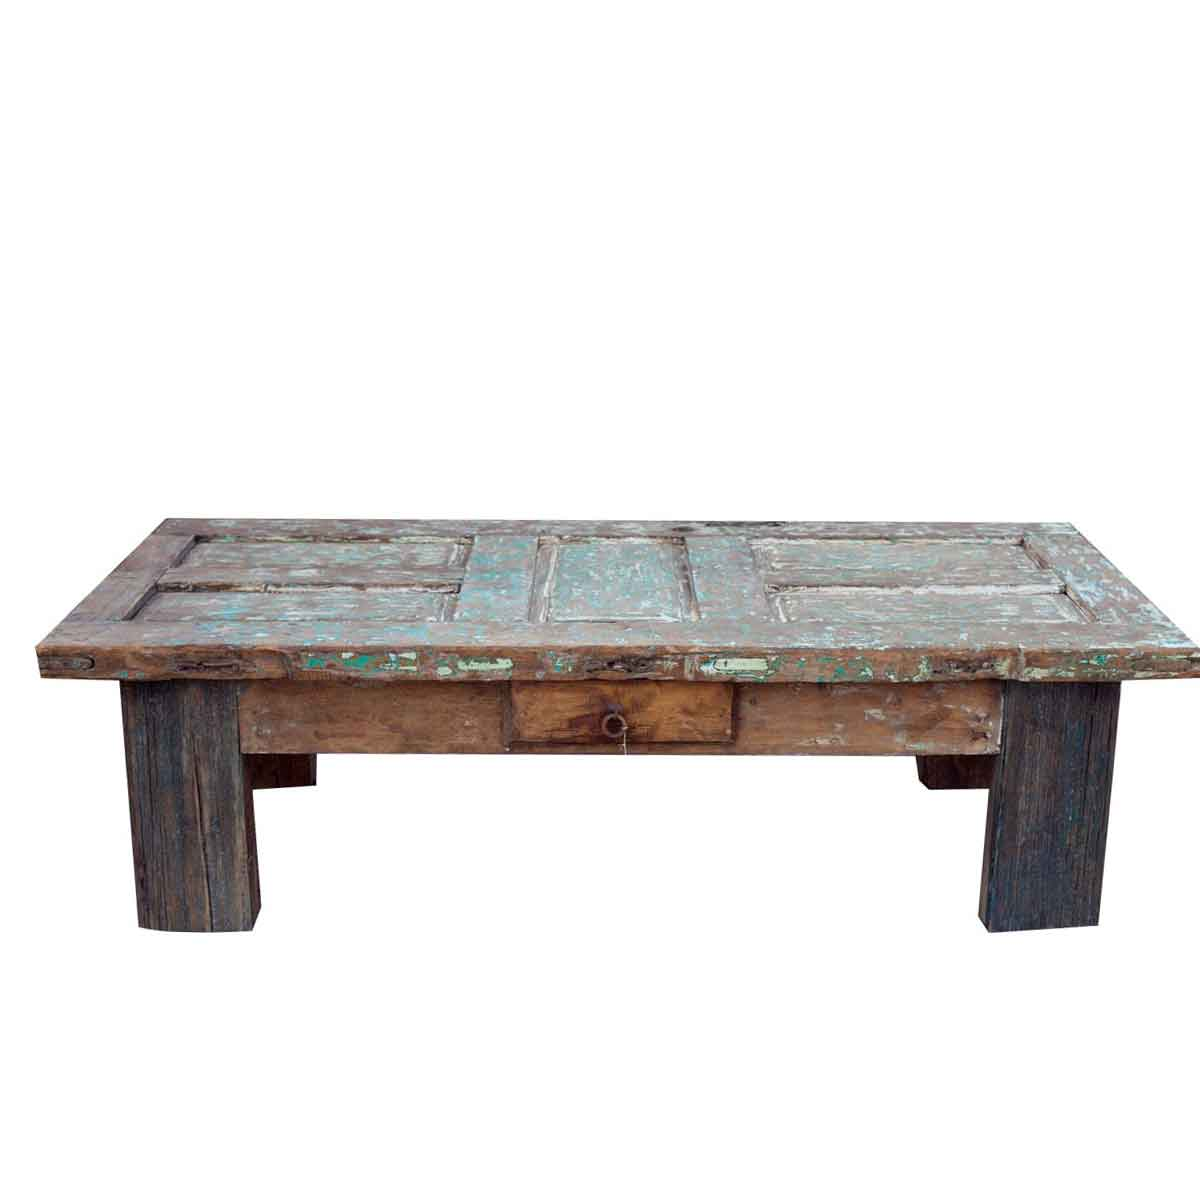 Order Blanco Reclaimed Coffee Table Online Crafted From A White Reclaimed Barn Door: coffee tables online